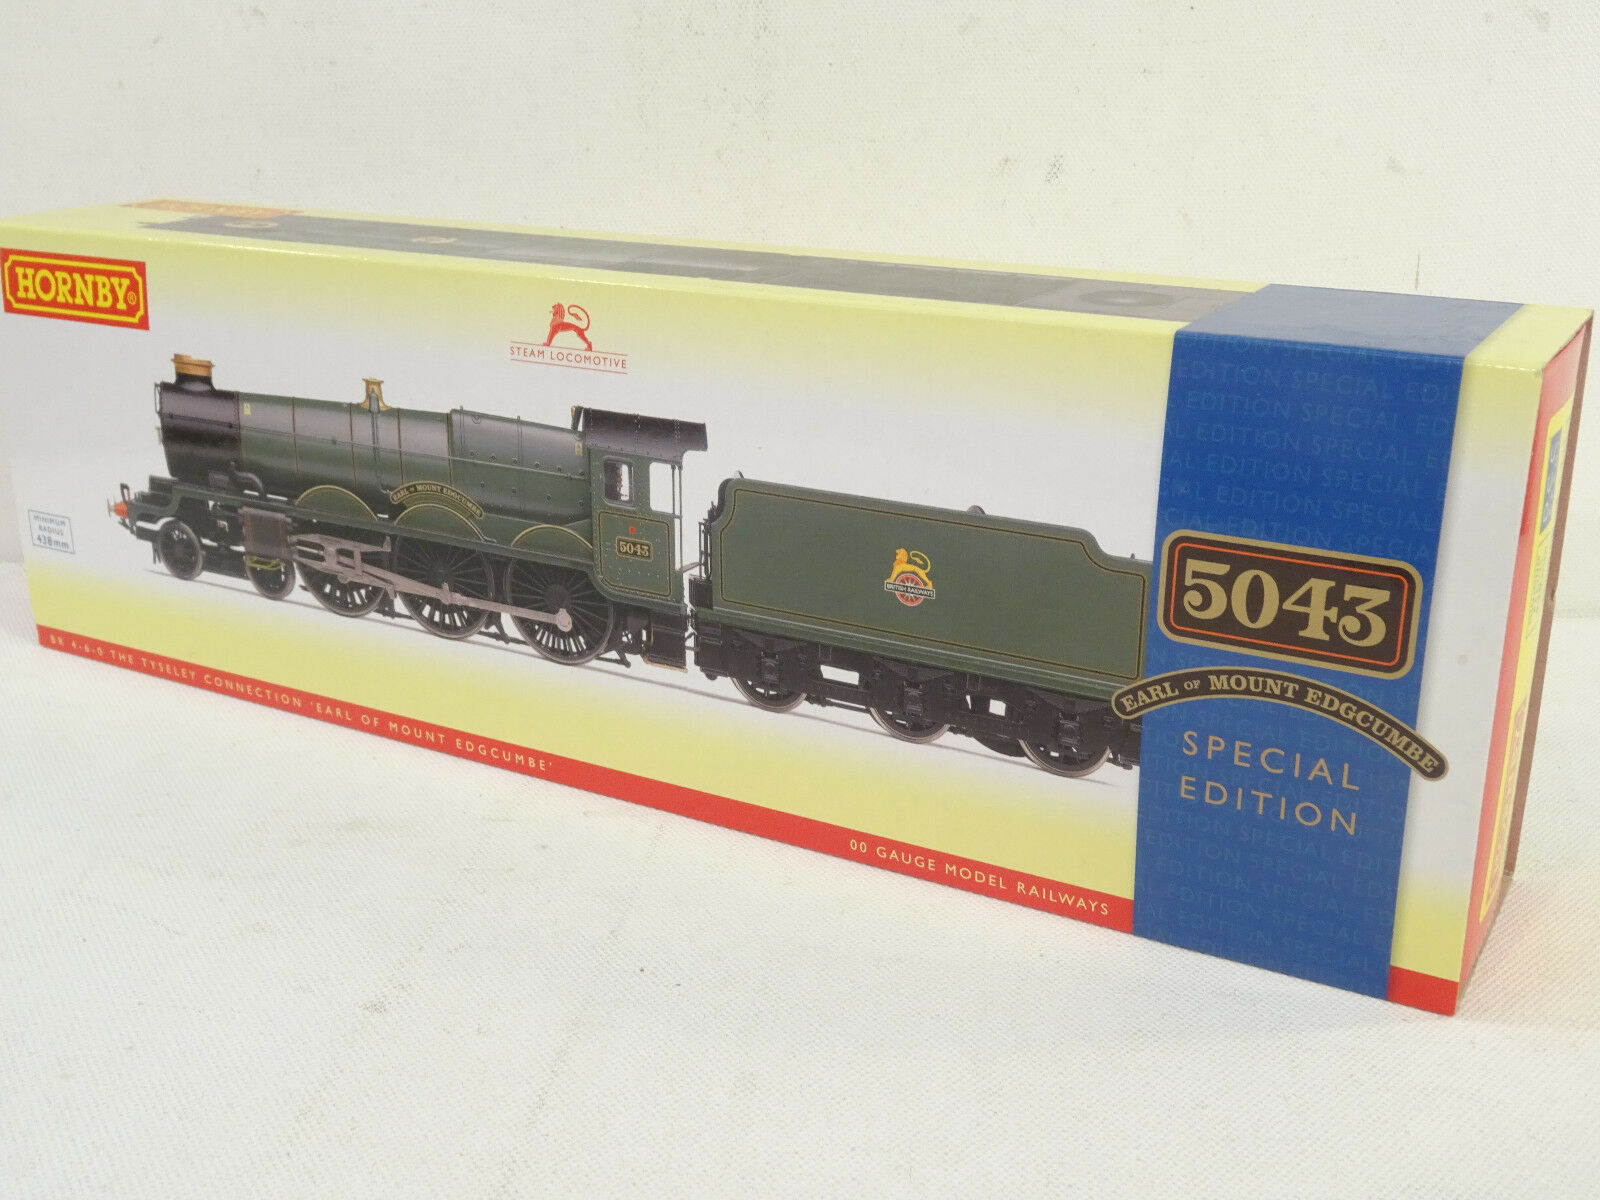 HORNBY SPECIAL EDITION 5043 EARL OF MOUNT EDGCUMBE (LOOK)